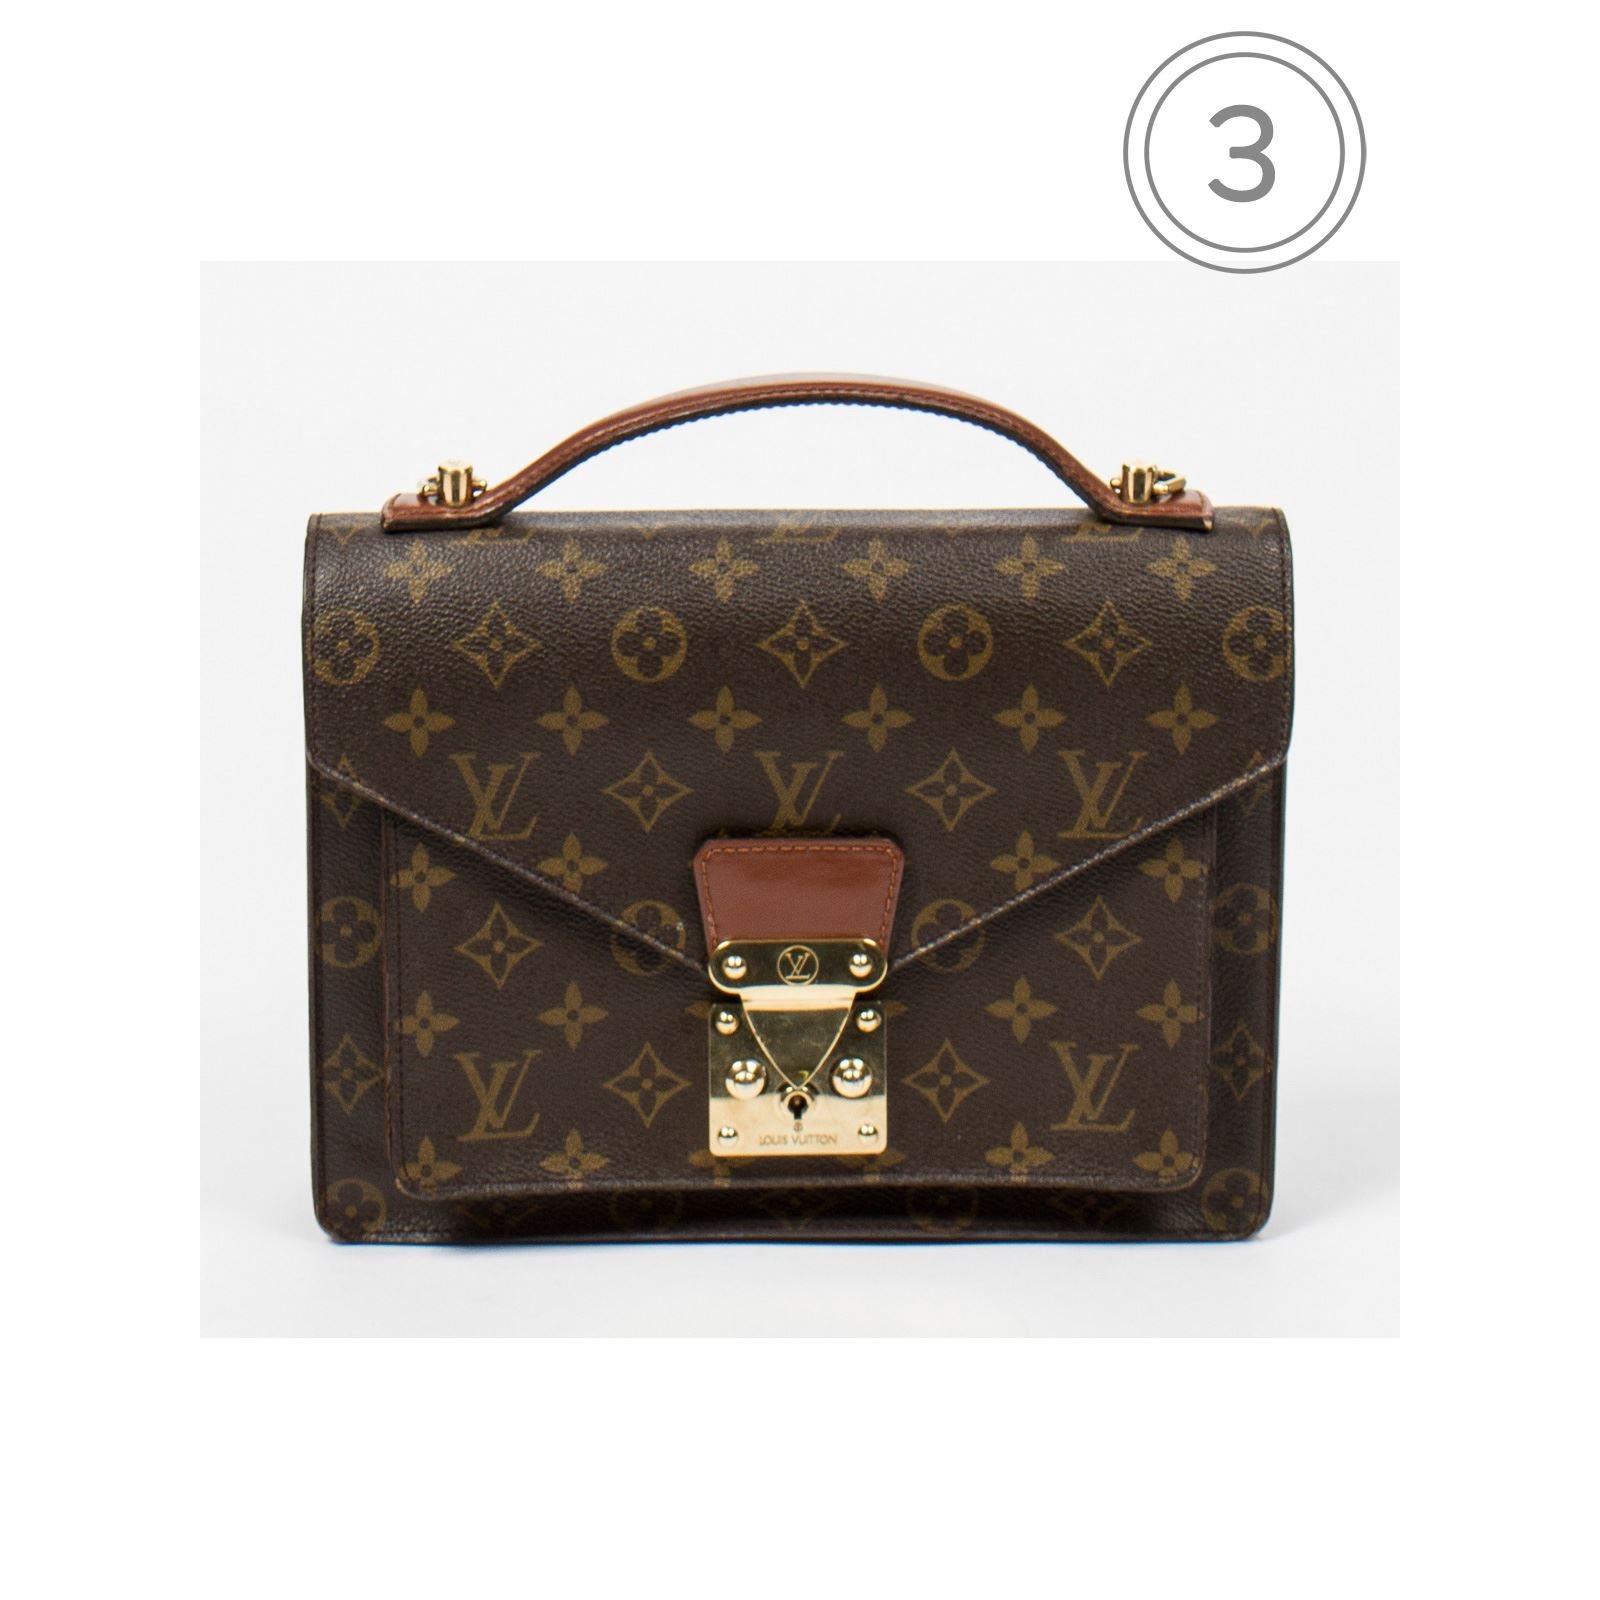 Louis Vuitton Monso - Cartable - Toile Monogram   BrandAlley 7a9949ddb75